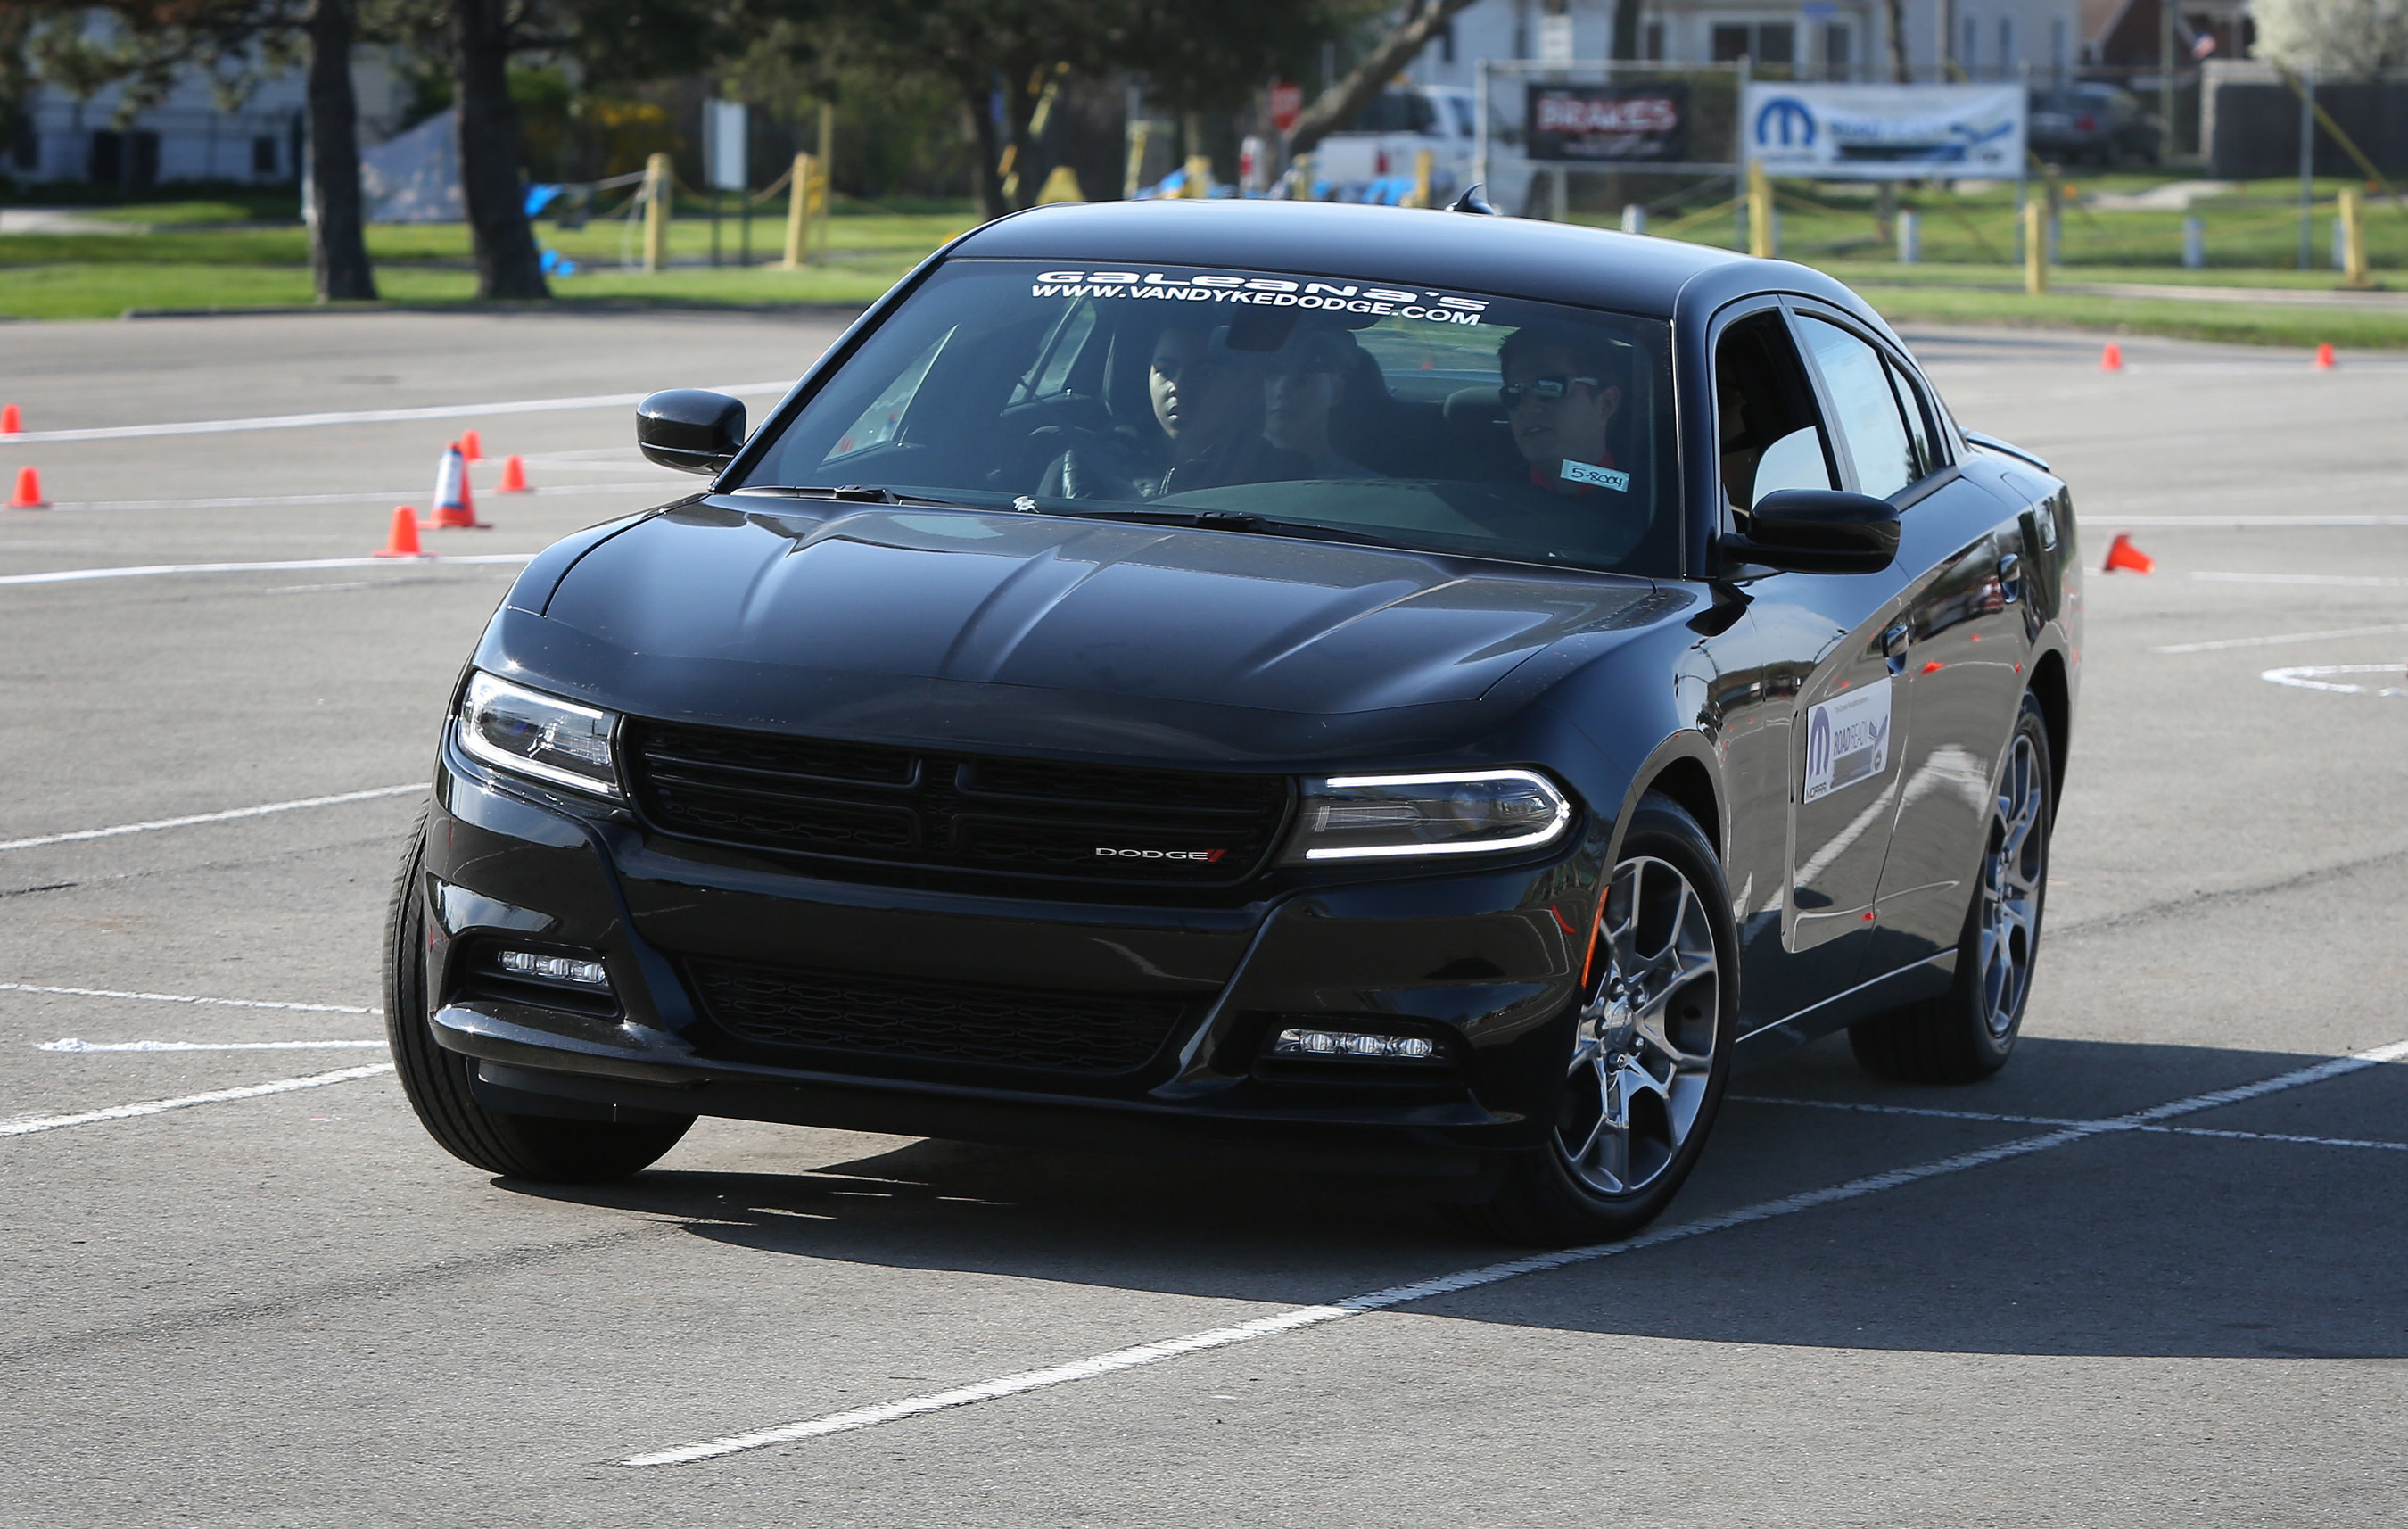 """The """"Mopar Road Ready Powered by Dodge"""" teen safe-driving program returns for seven additional events in 2016/2017, including new stops in Phoenix and Austin, Texas."""